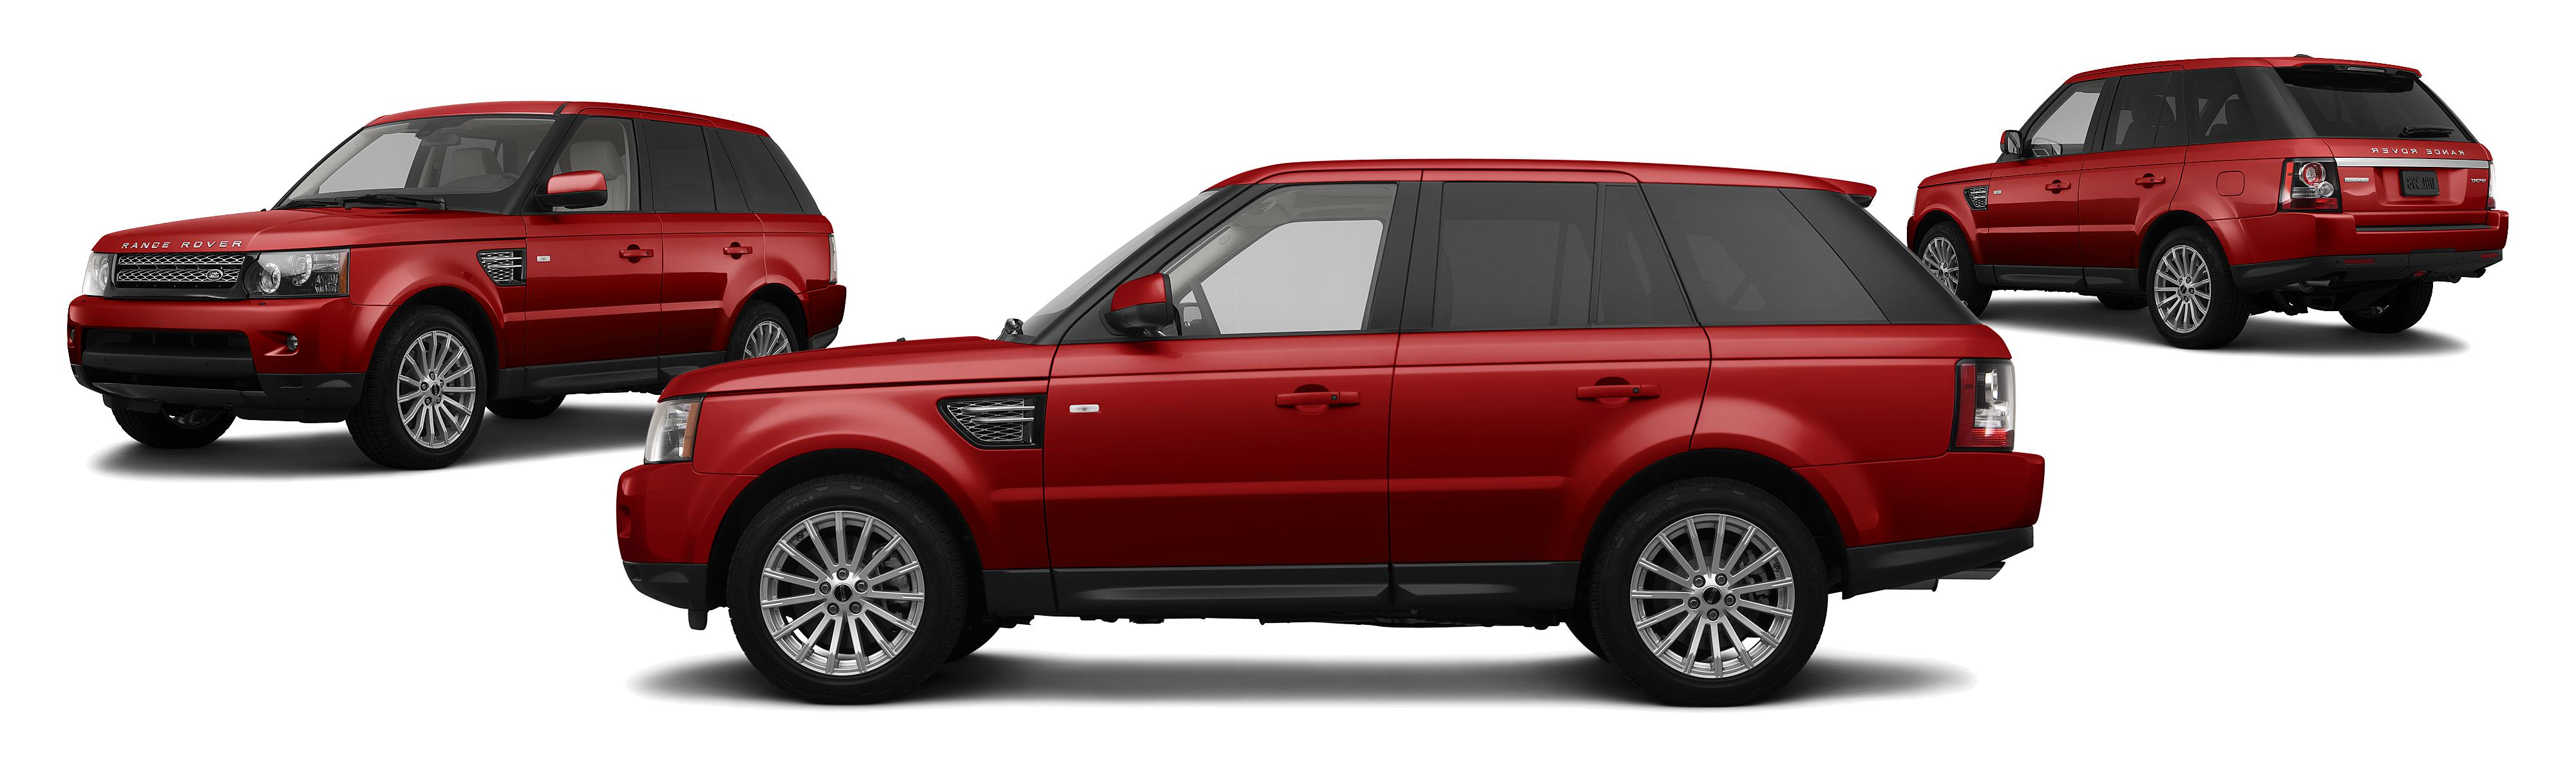 2012 Land Rover Range Rover Sport 4x4 Autobiography 4dr SUV